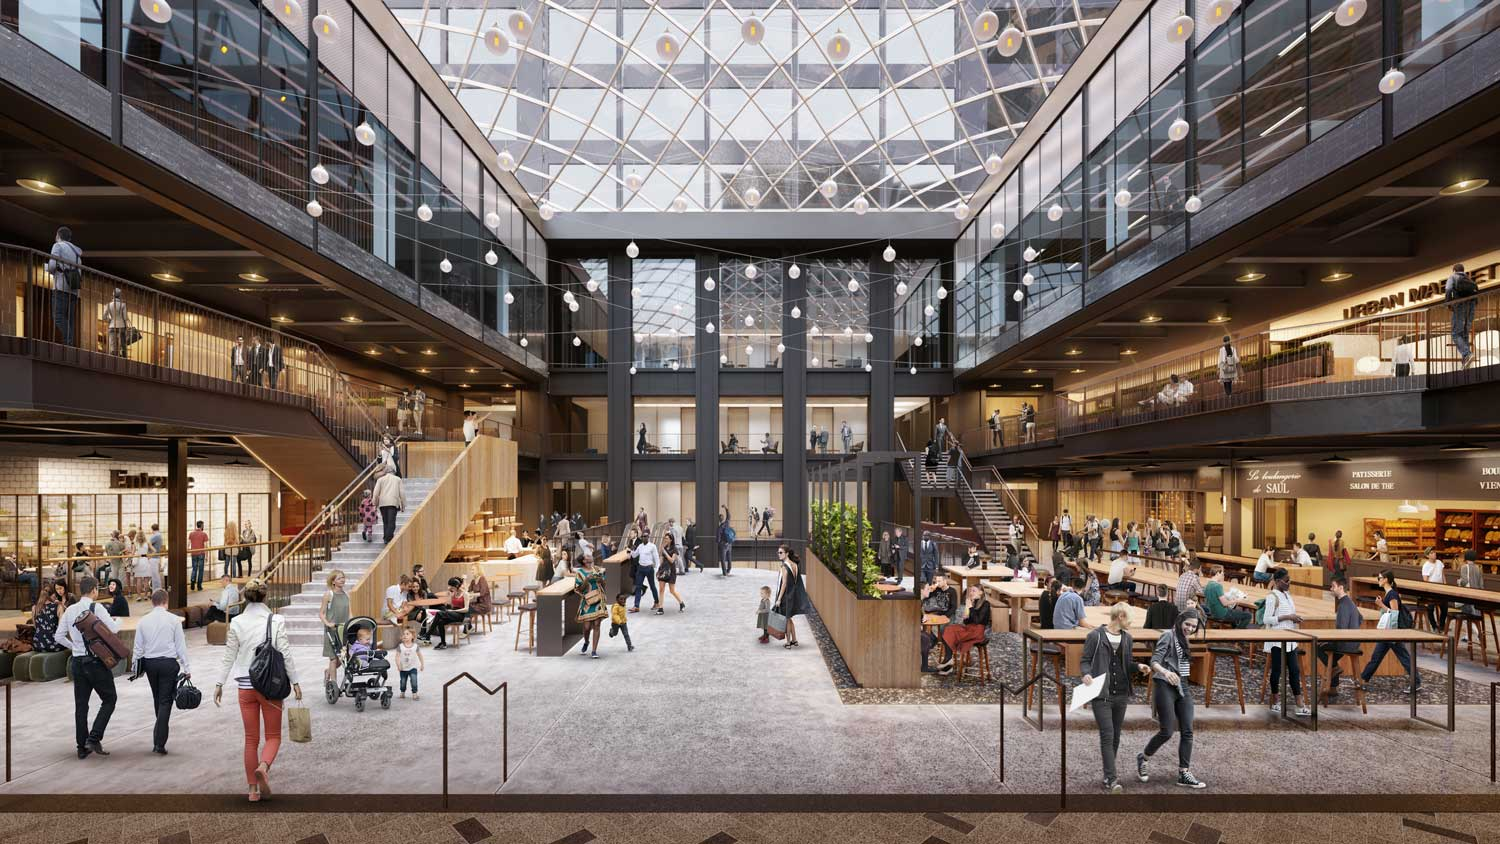 Architectural rendering Willis Tower